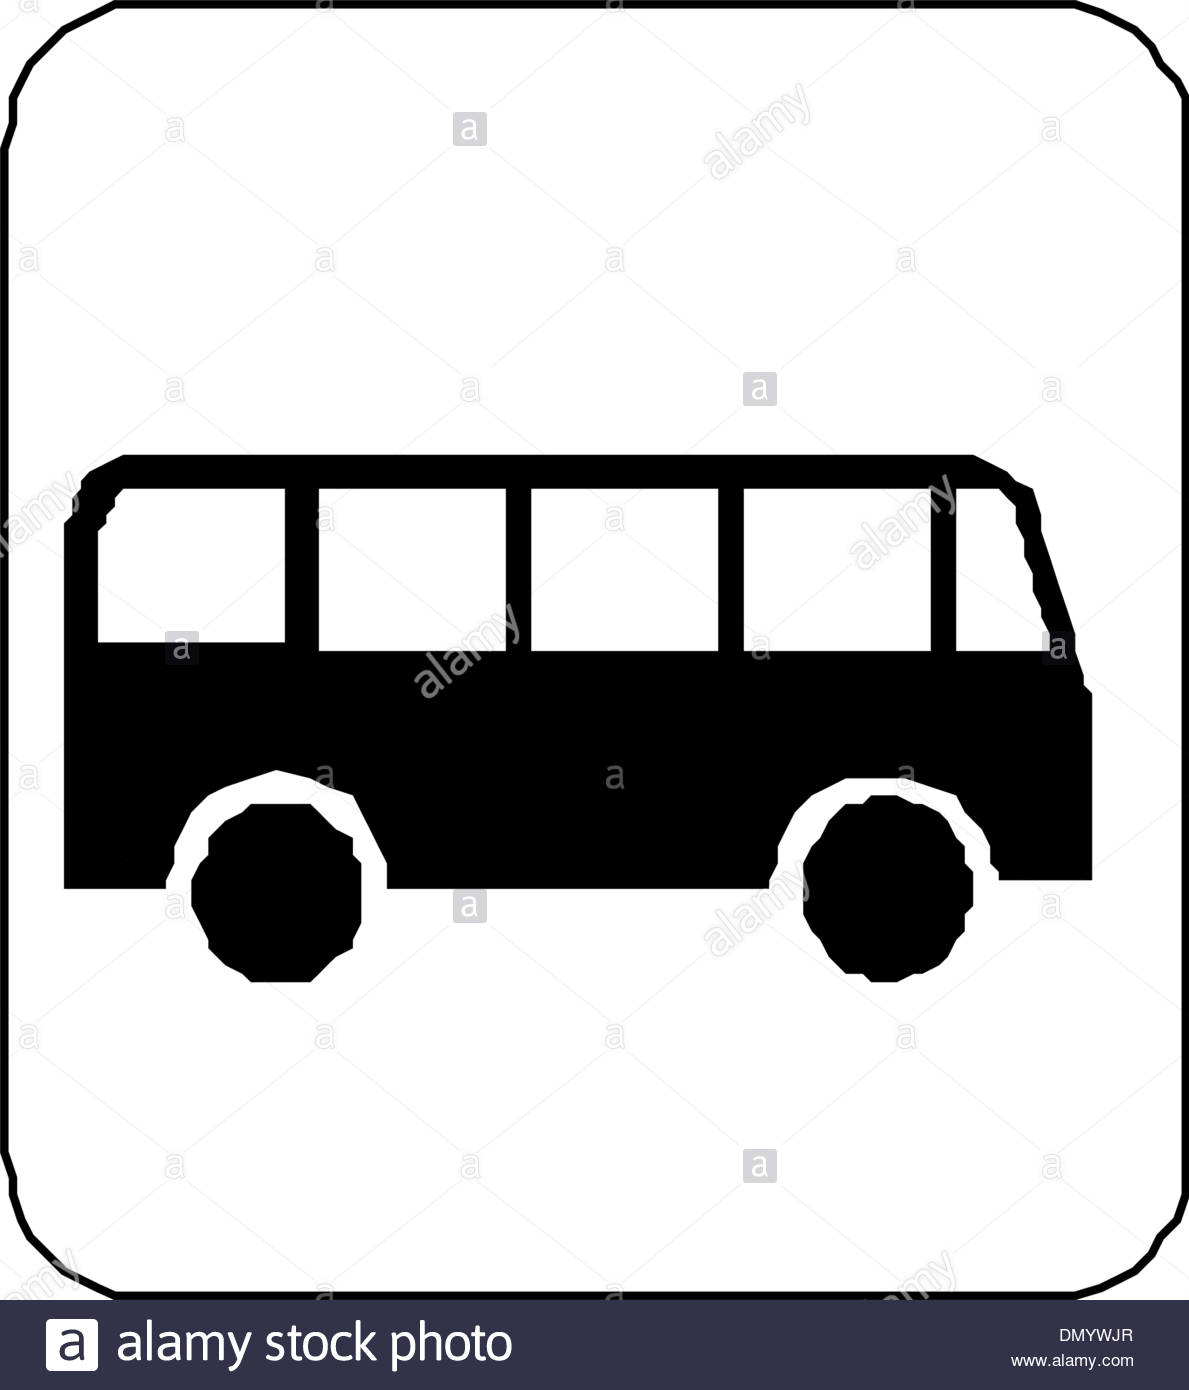 1189x1390 Black Silhouette On A Bus. Vector Illustration Stock Vector Art